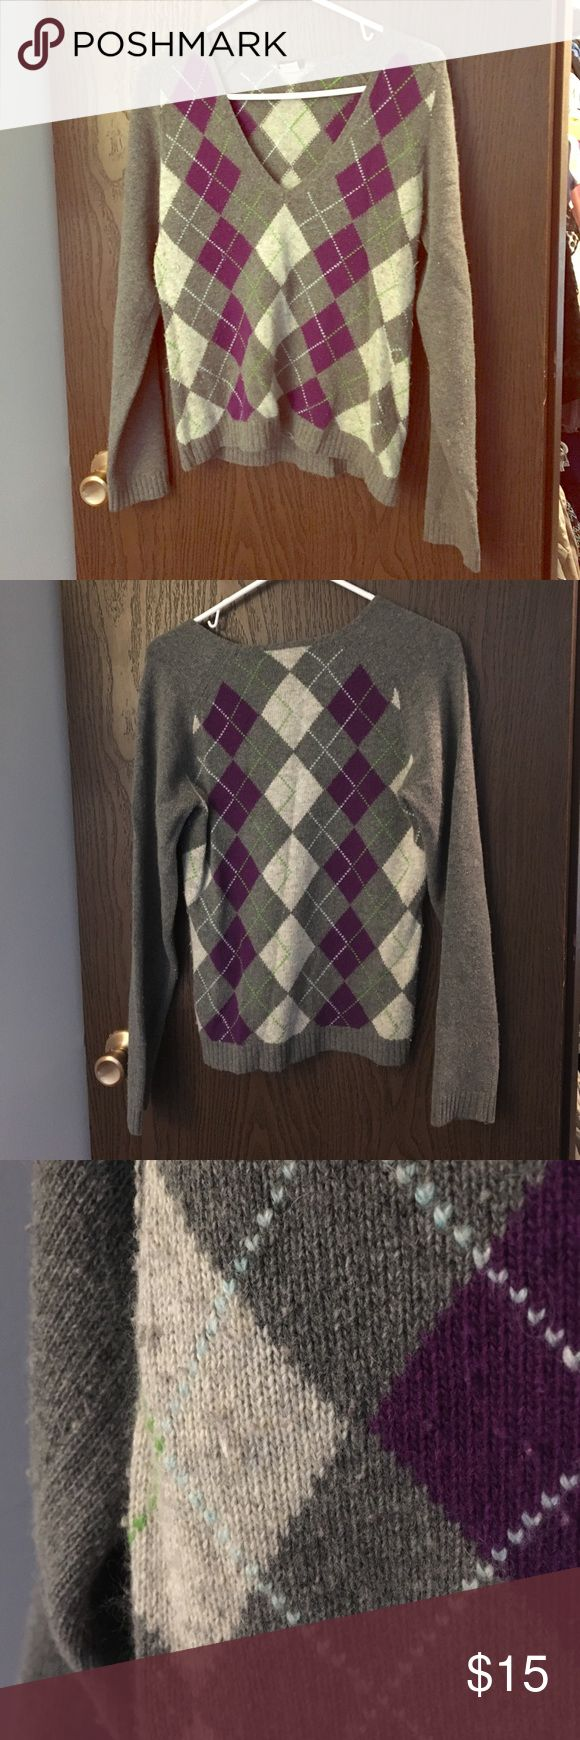 J. Crew argyle sweater J crew v neck argyle sweater. Adorable purple and gray pattern. Has some pilling on front and under arms. 40% merino wool, 30% viscose, 20% angora rabbit hair 10% cashmere J. Crew Sweaters V-Necks